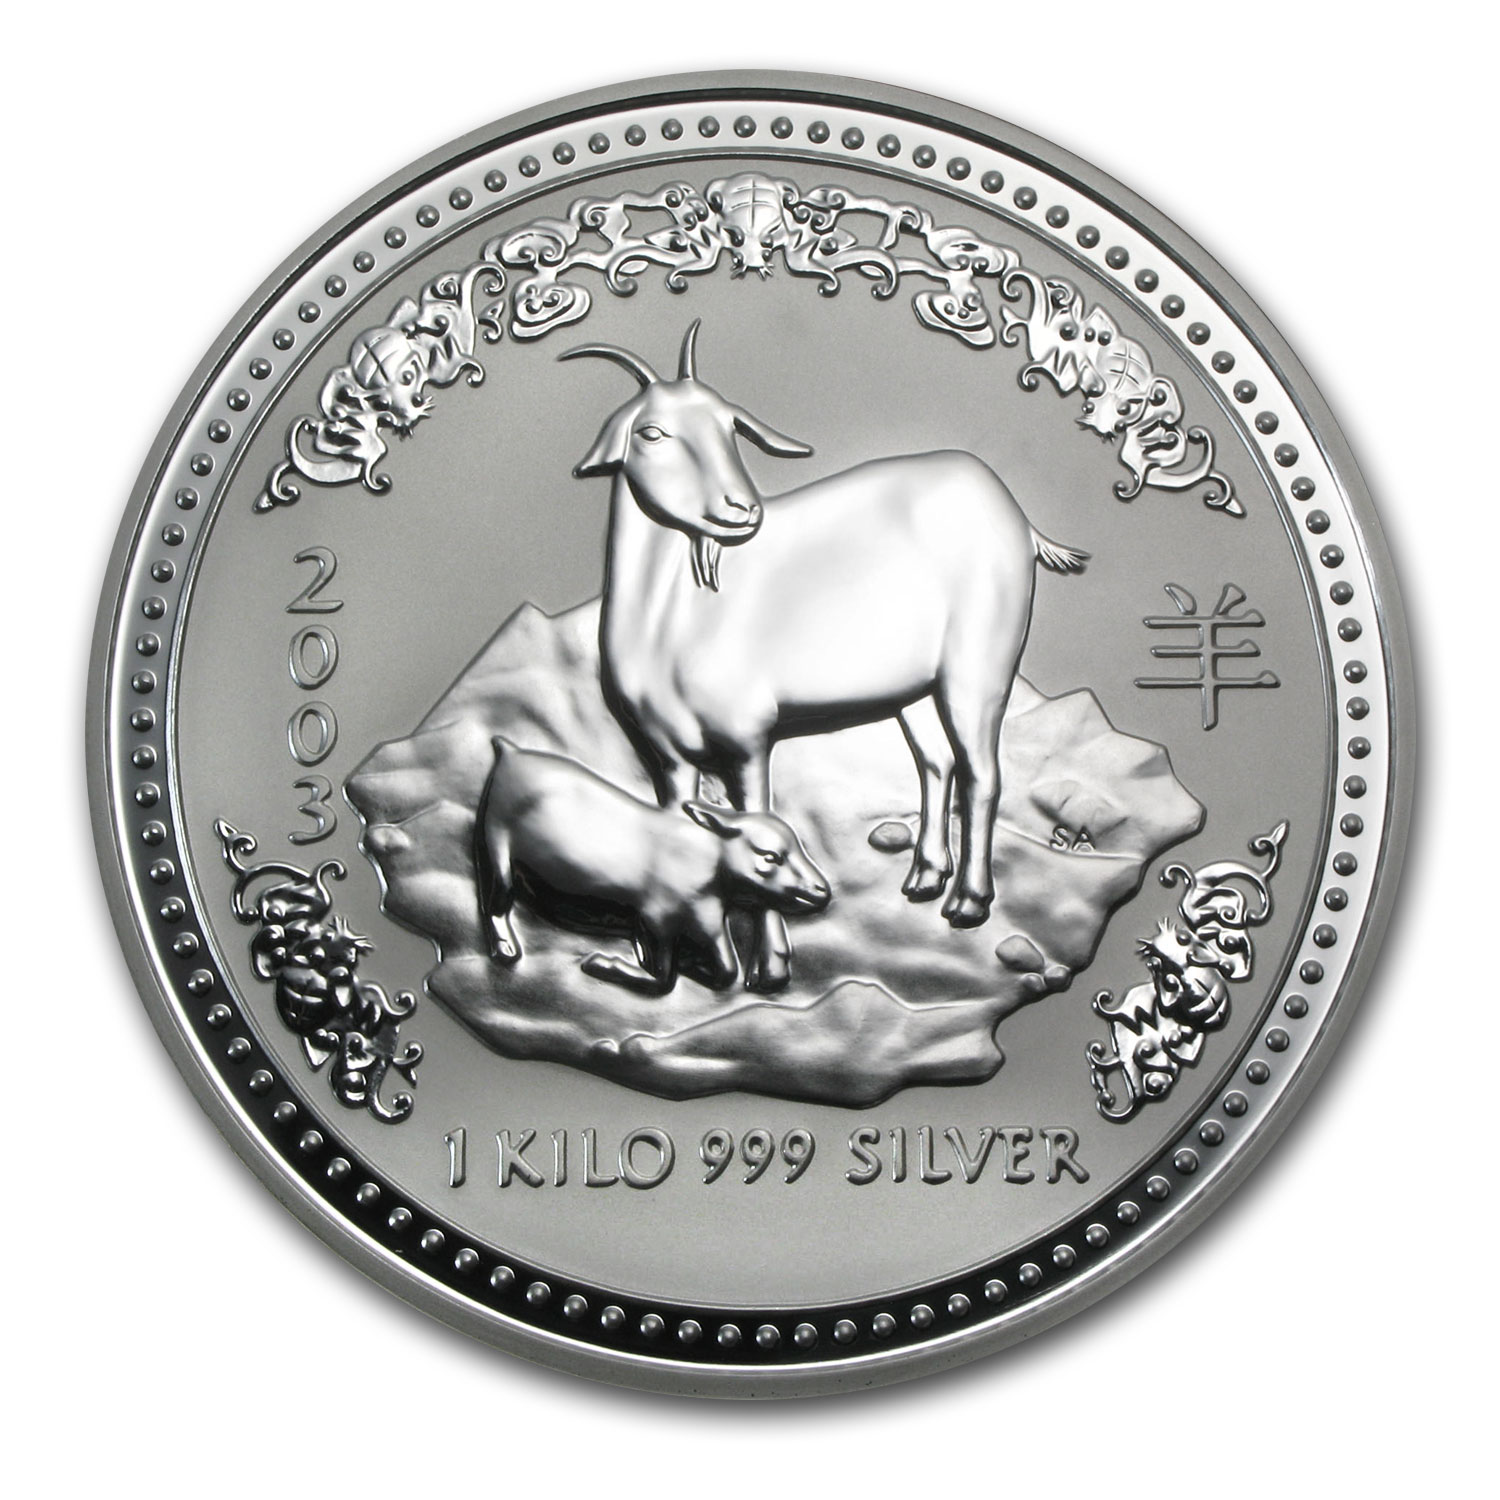 2003 Australia 1 kilo Silver Year of the Goat BU